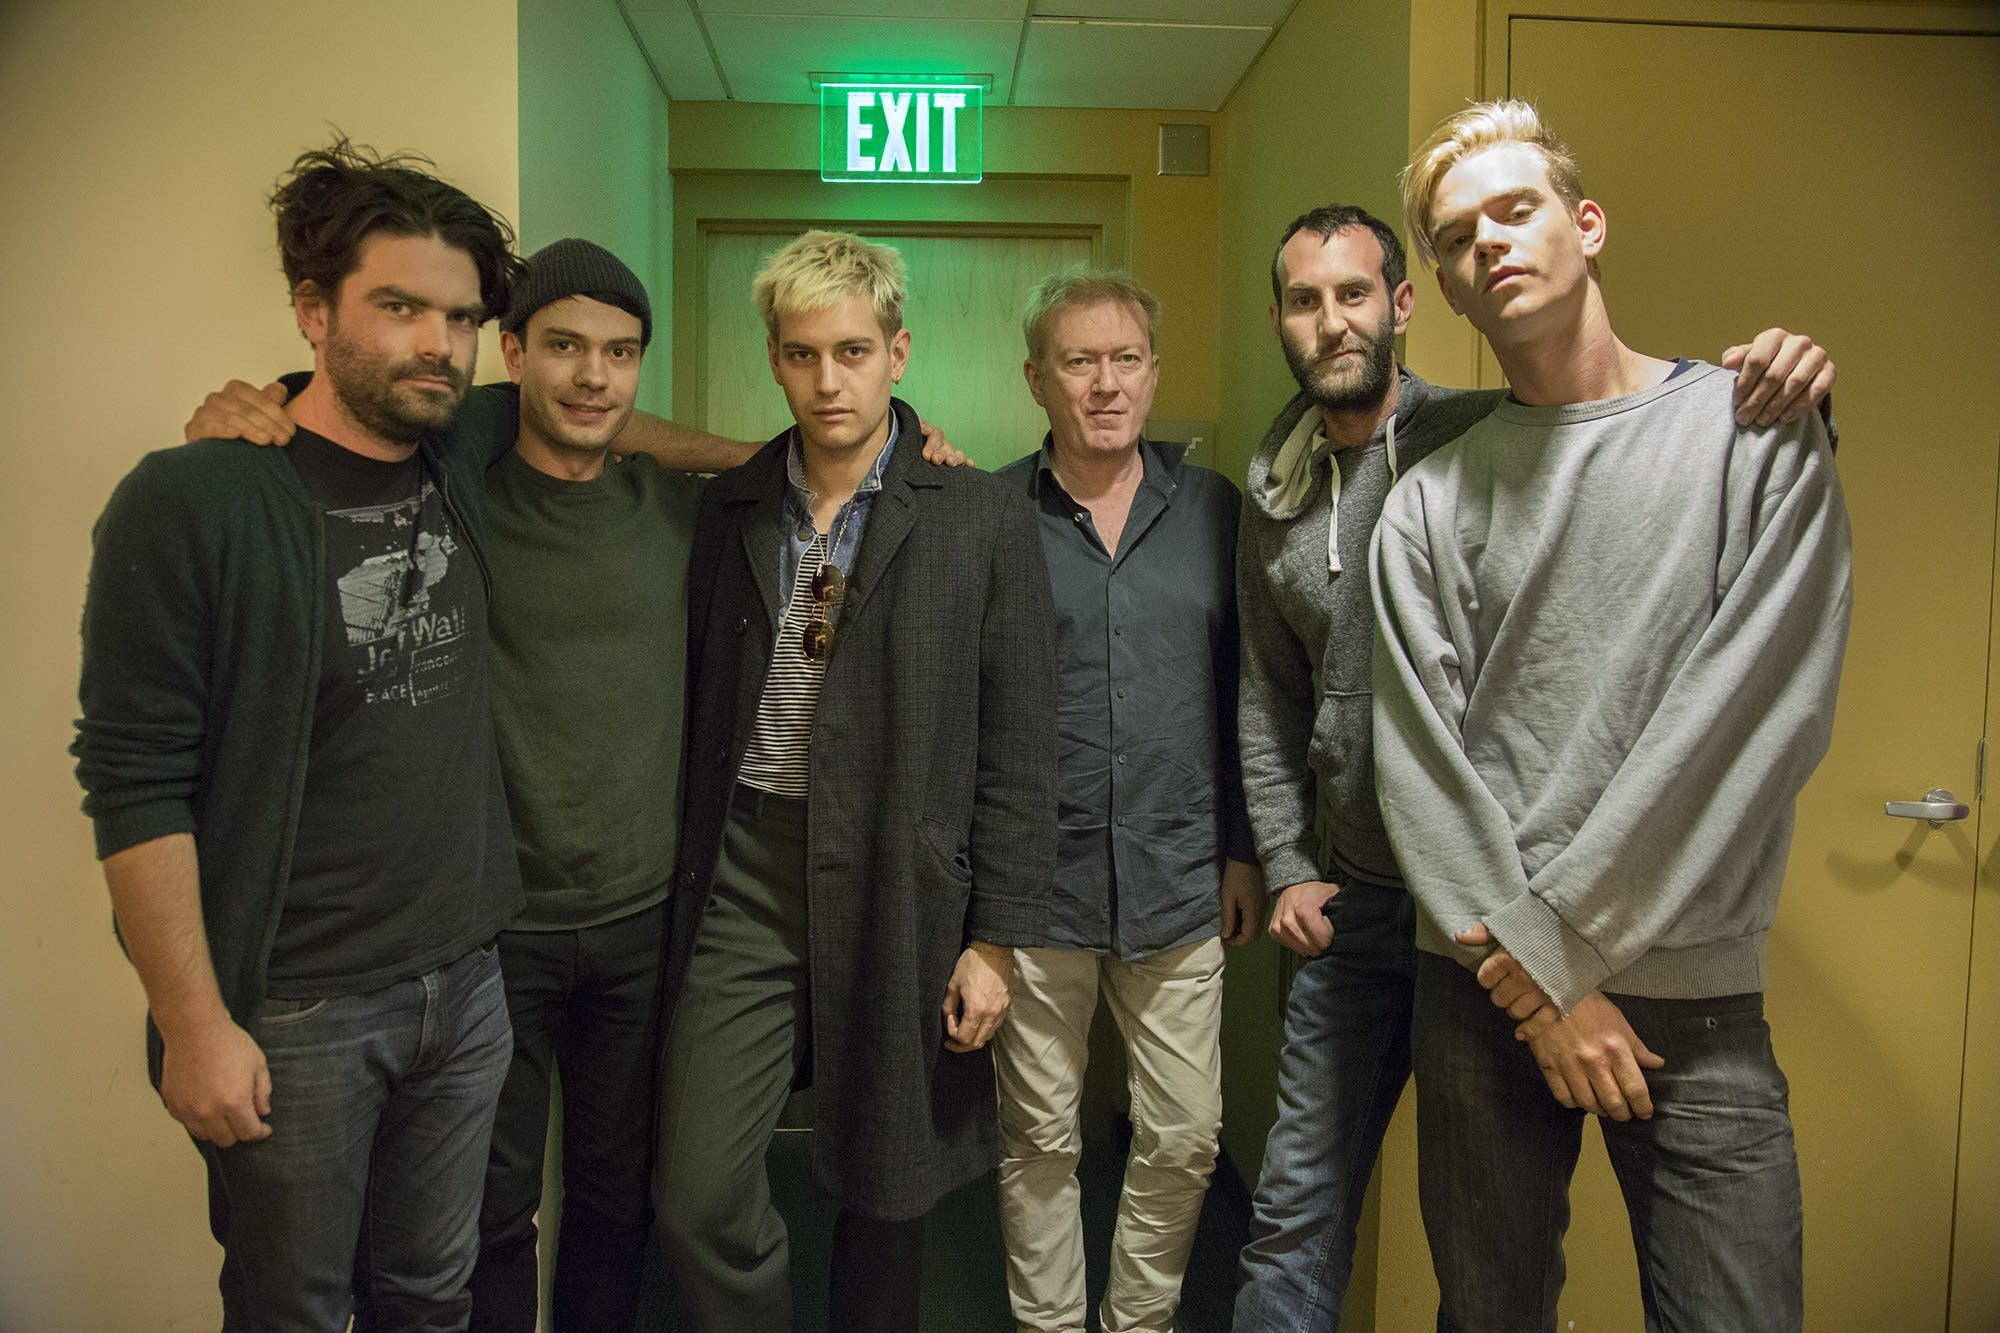 Andy Gill (center) meets Viet Cong